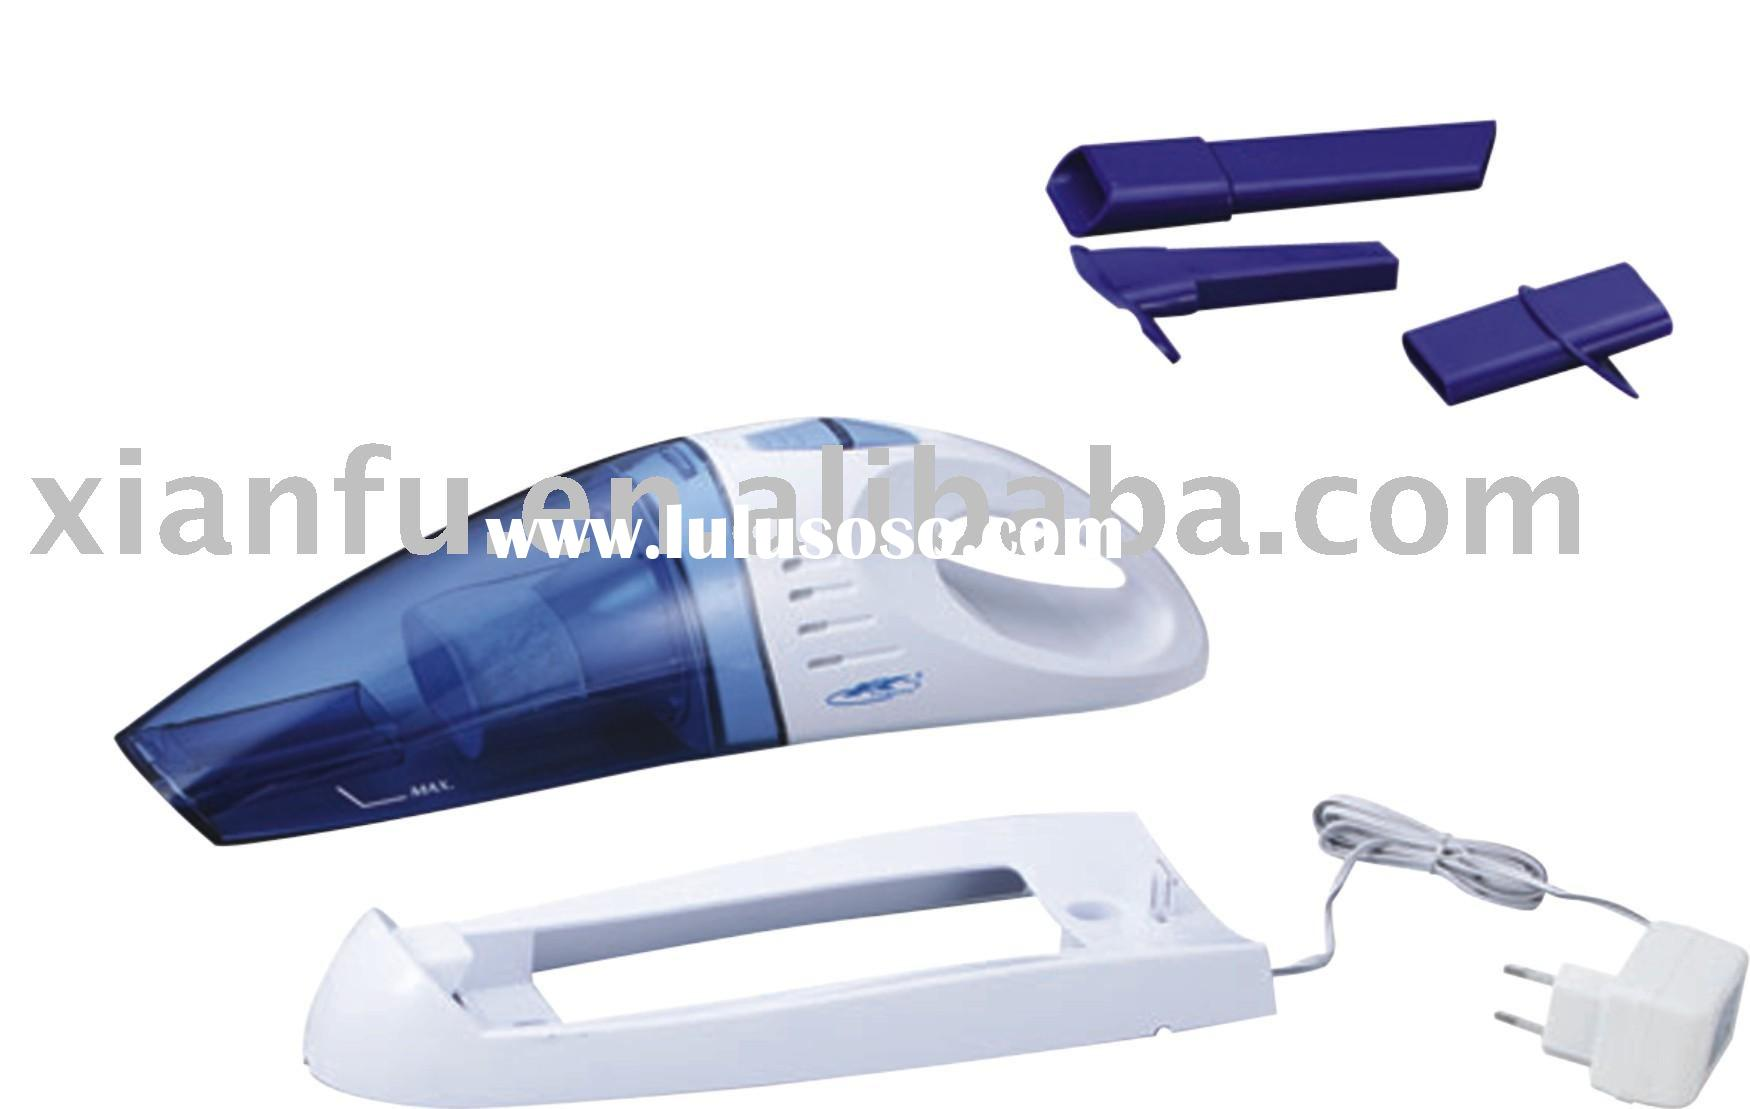 Rechargeable Portable Vacuum Cleaner